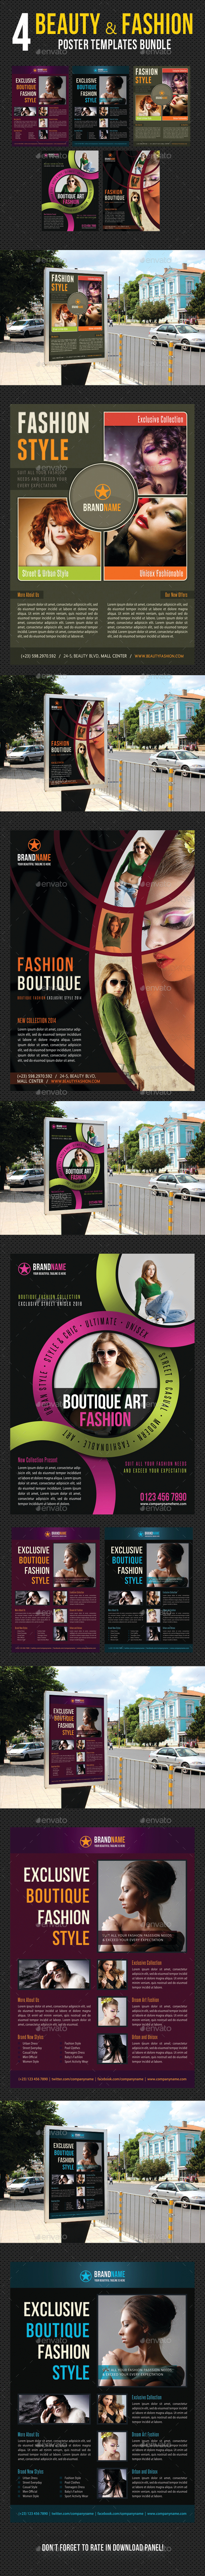 4 in 1 Beauty and Fashion Poster Bundle 03 - Signage Print Templates